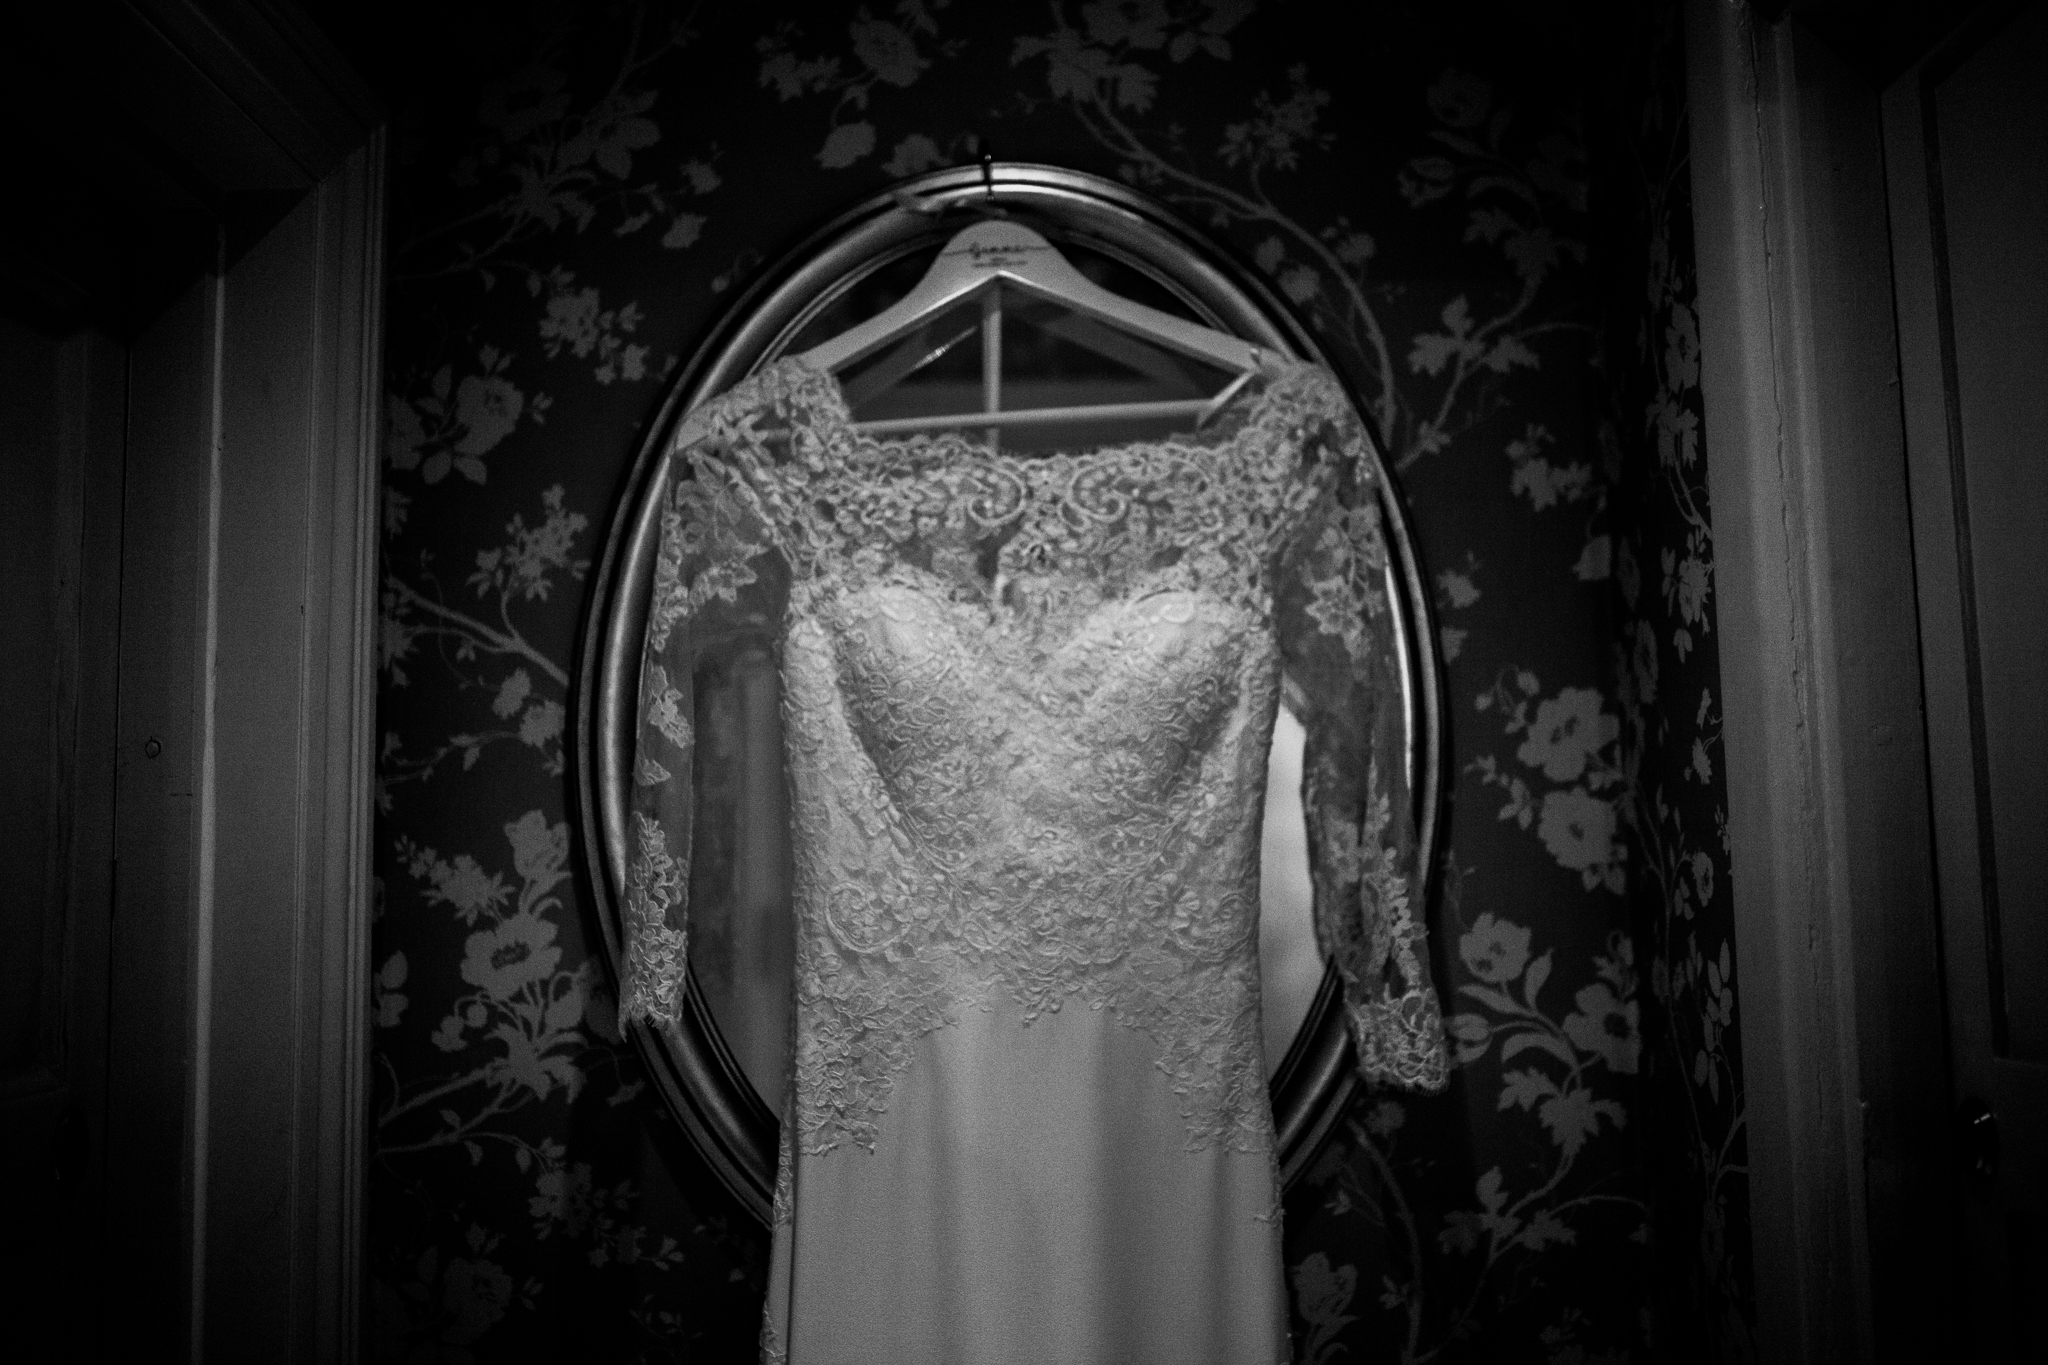 Mirror in hallway with wedding dress hanging on it